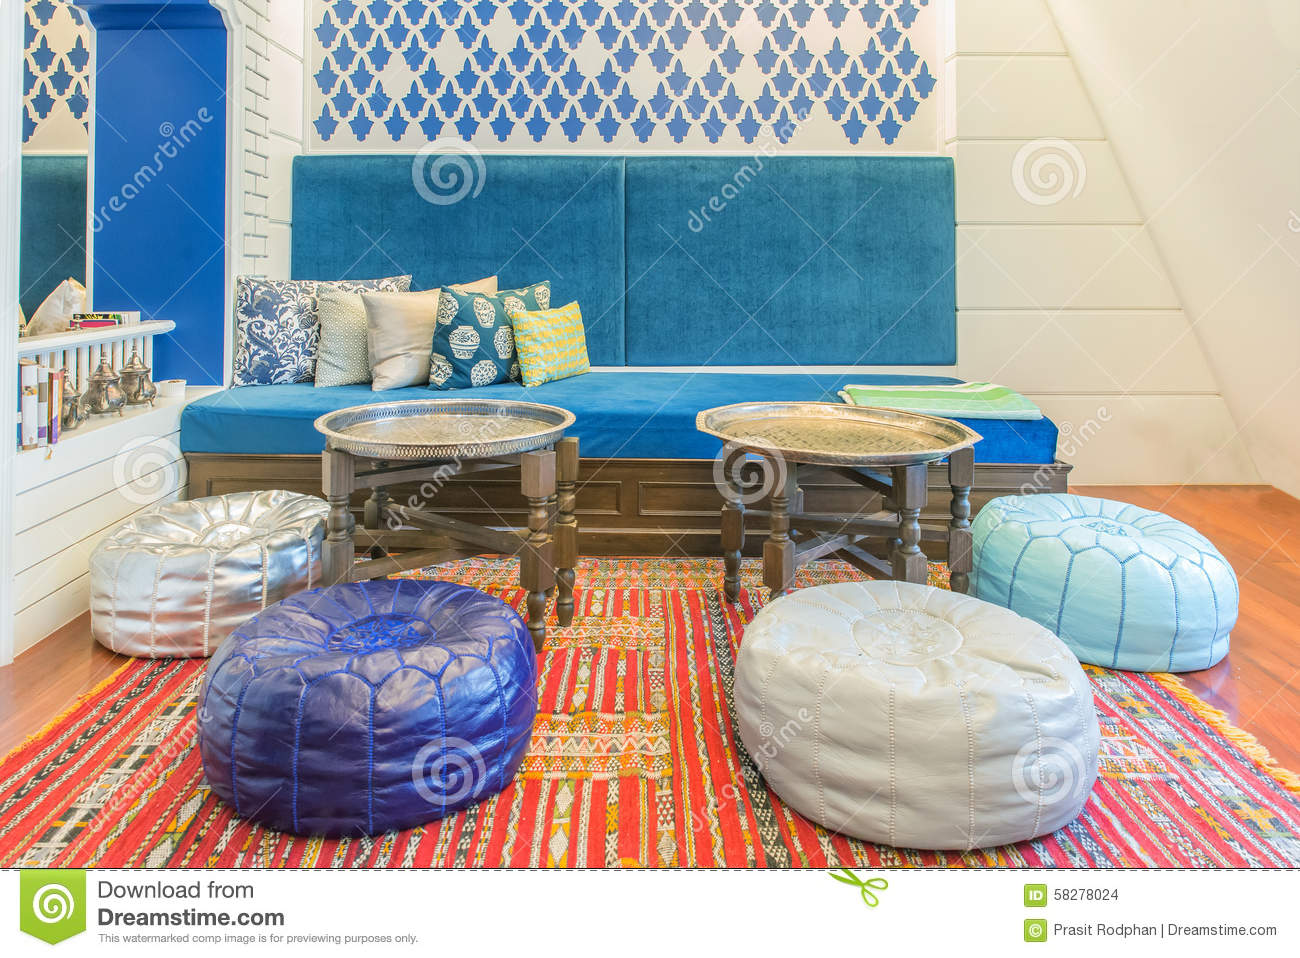 Moroccan Style In Living Room. Stock Photo - Image of arabian ...